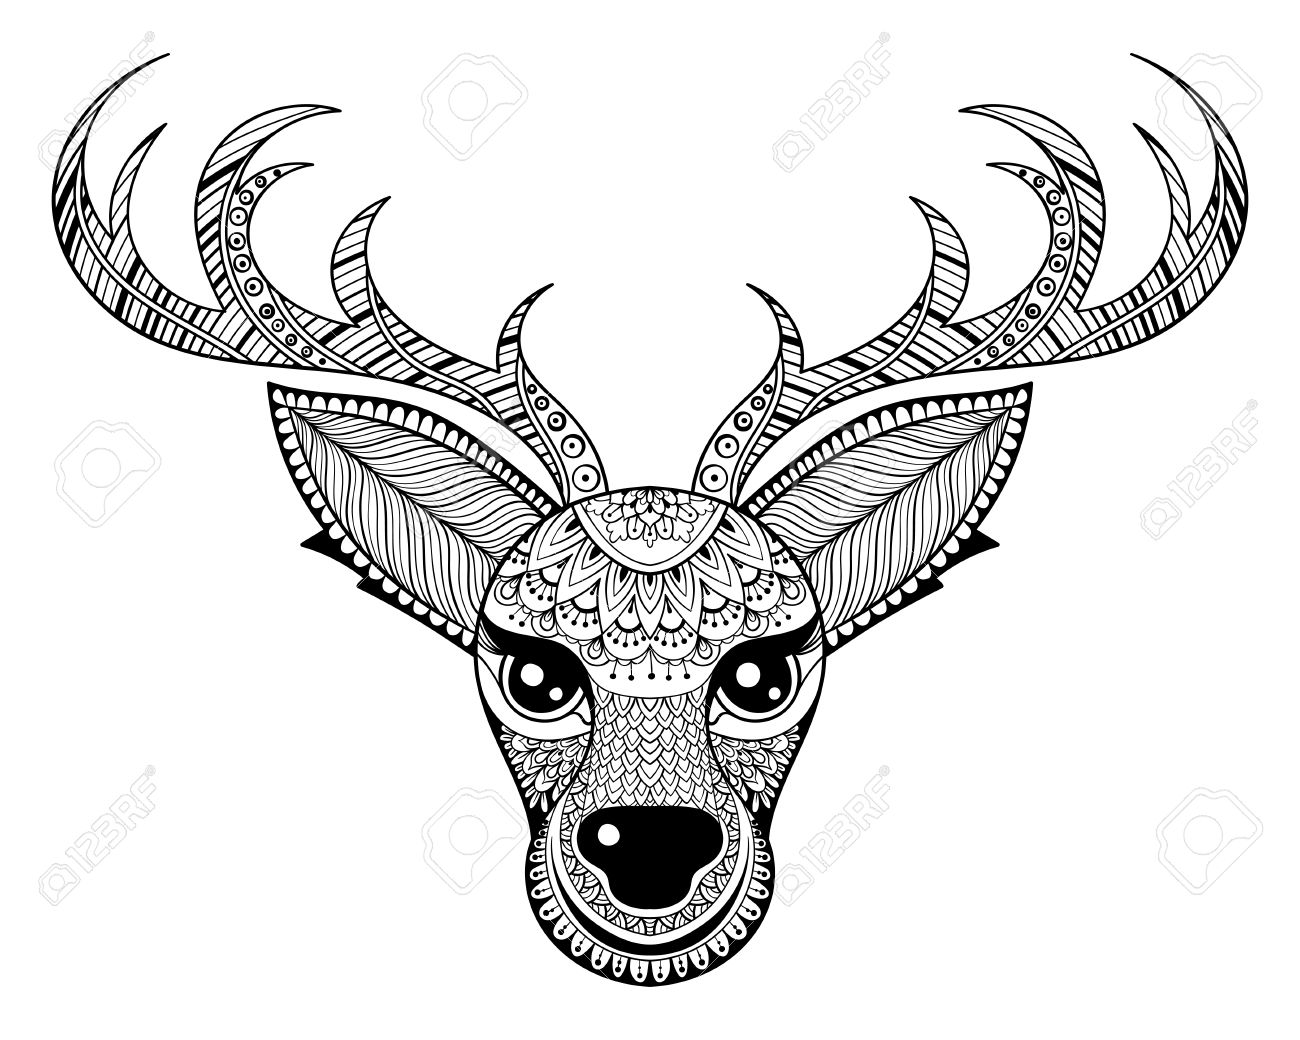 zentangle vector reindeer for adult anti stress coloring pages ornamental tribal patterned christmas deer head